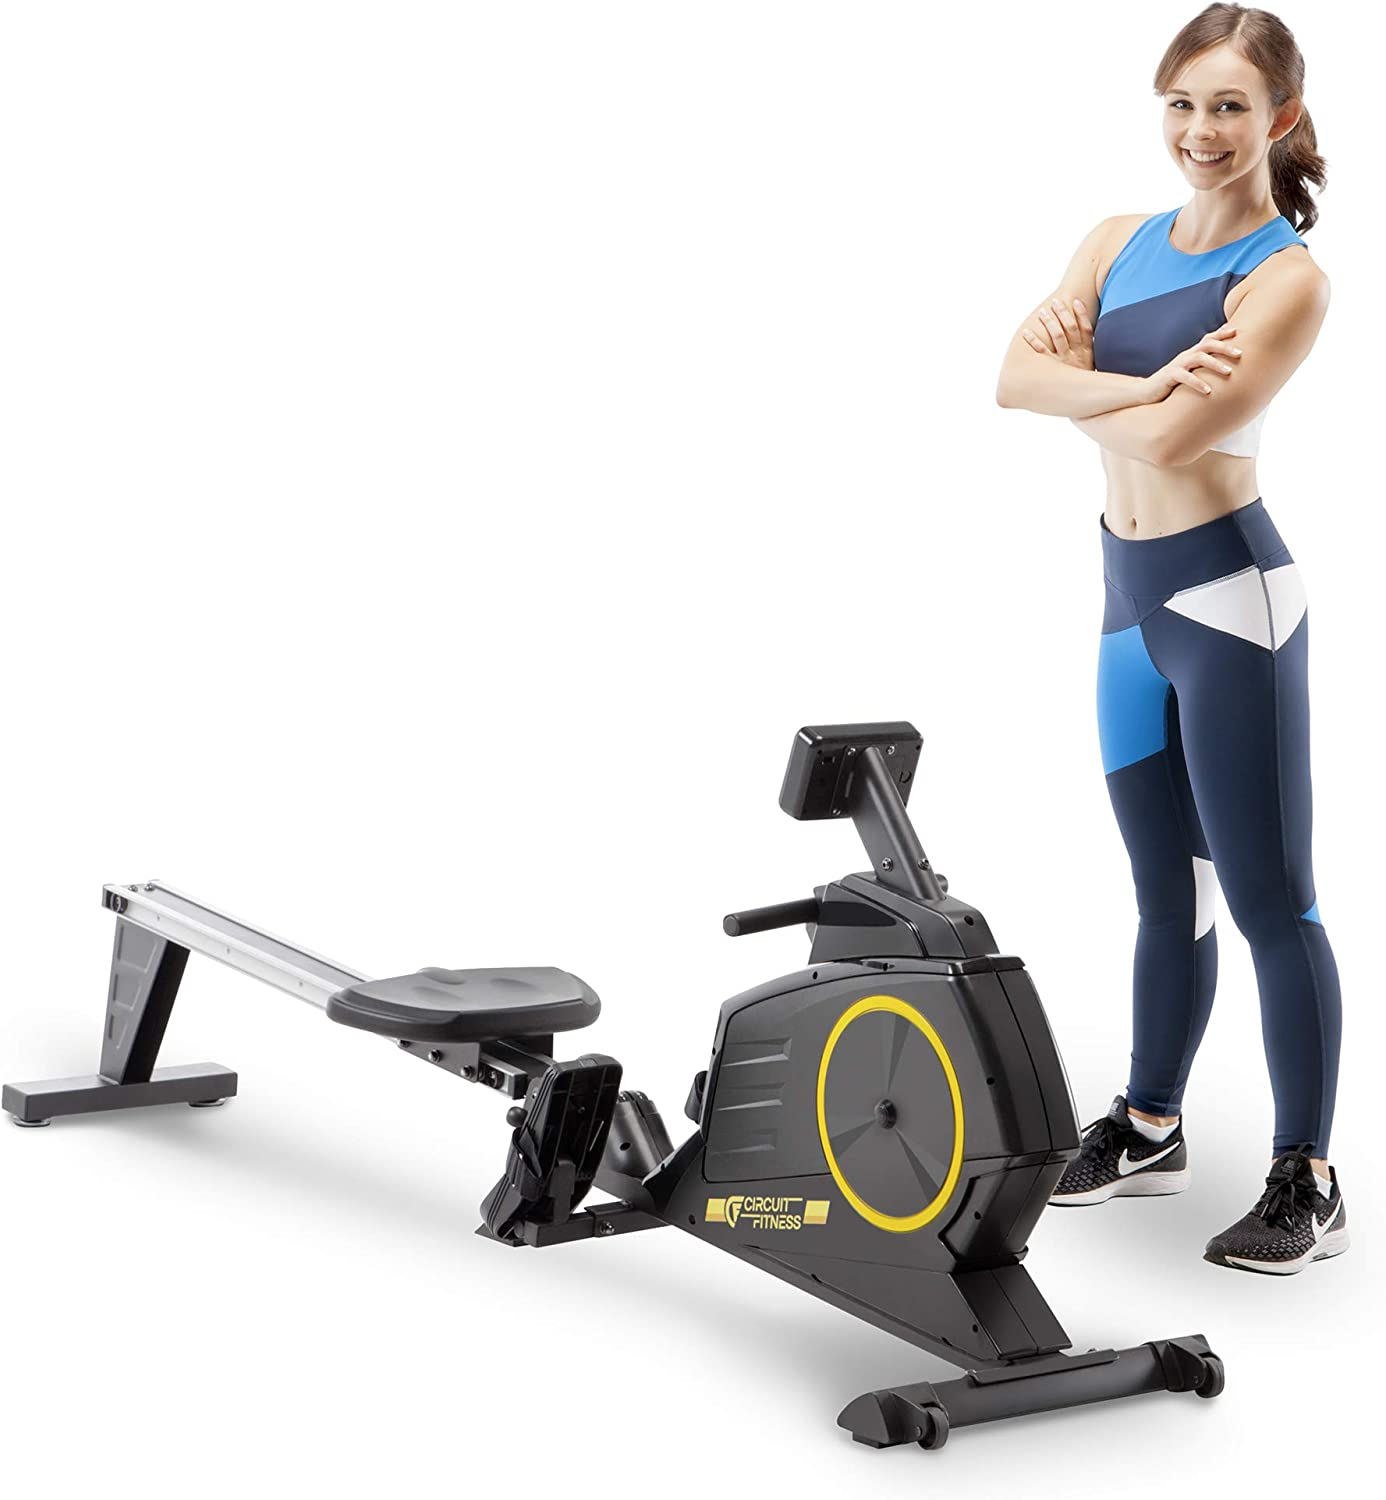 CIRCUIT FITNESS Deluxe Foldable Magnetic Rowing Machine with 8 Resistance Setting & Transport Wheels - Yellow